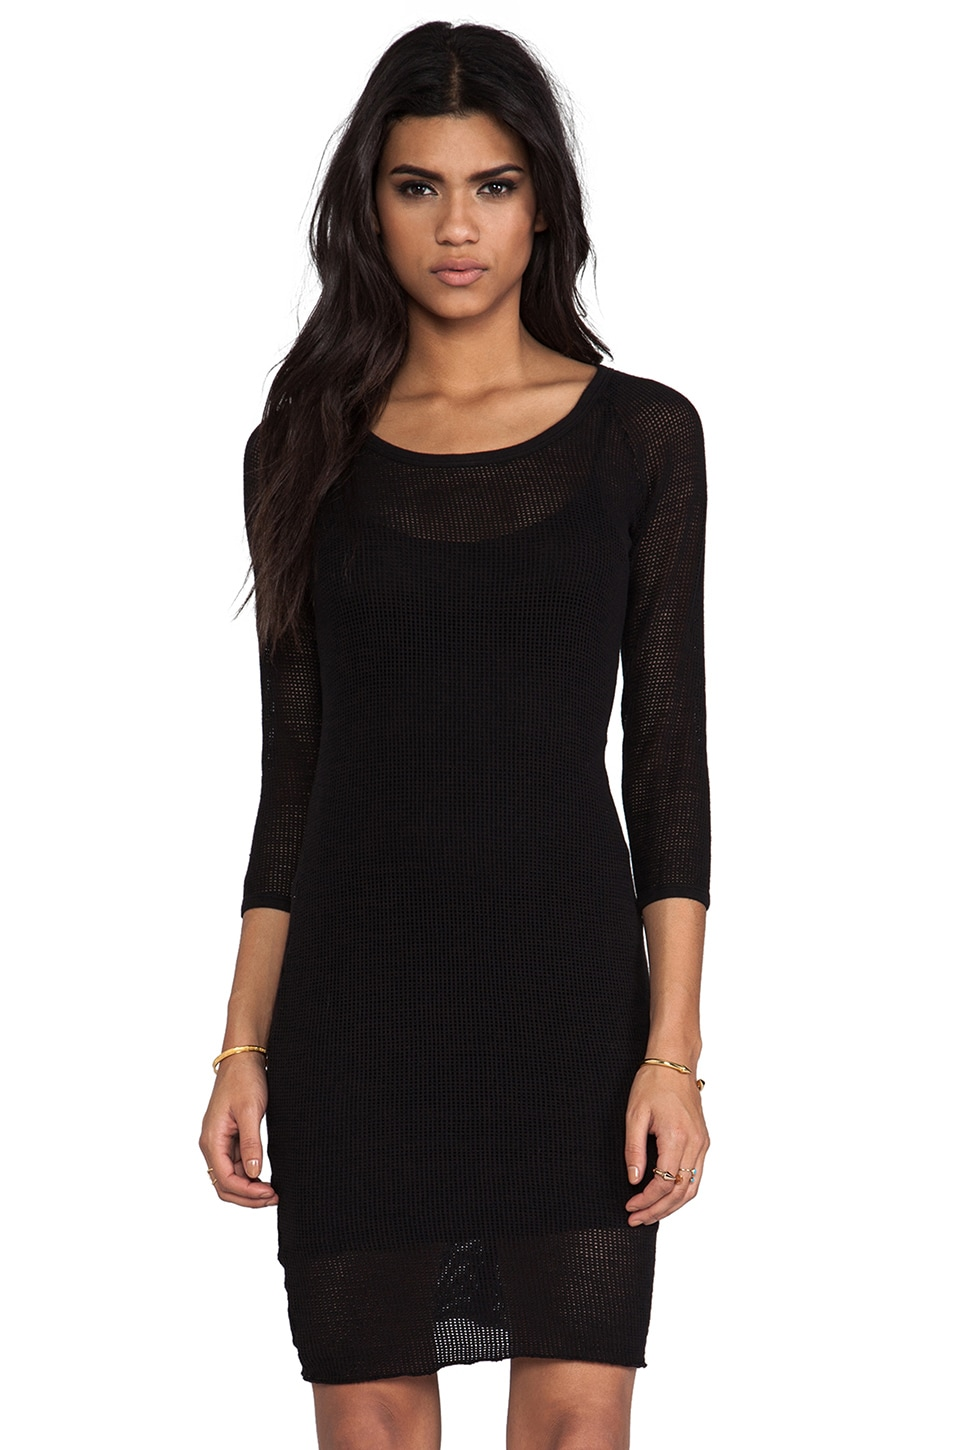 James Perse Raglan Mesh Dress in Black